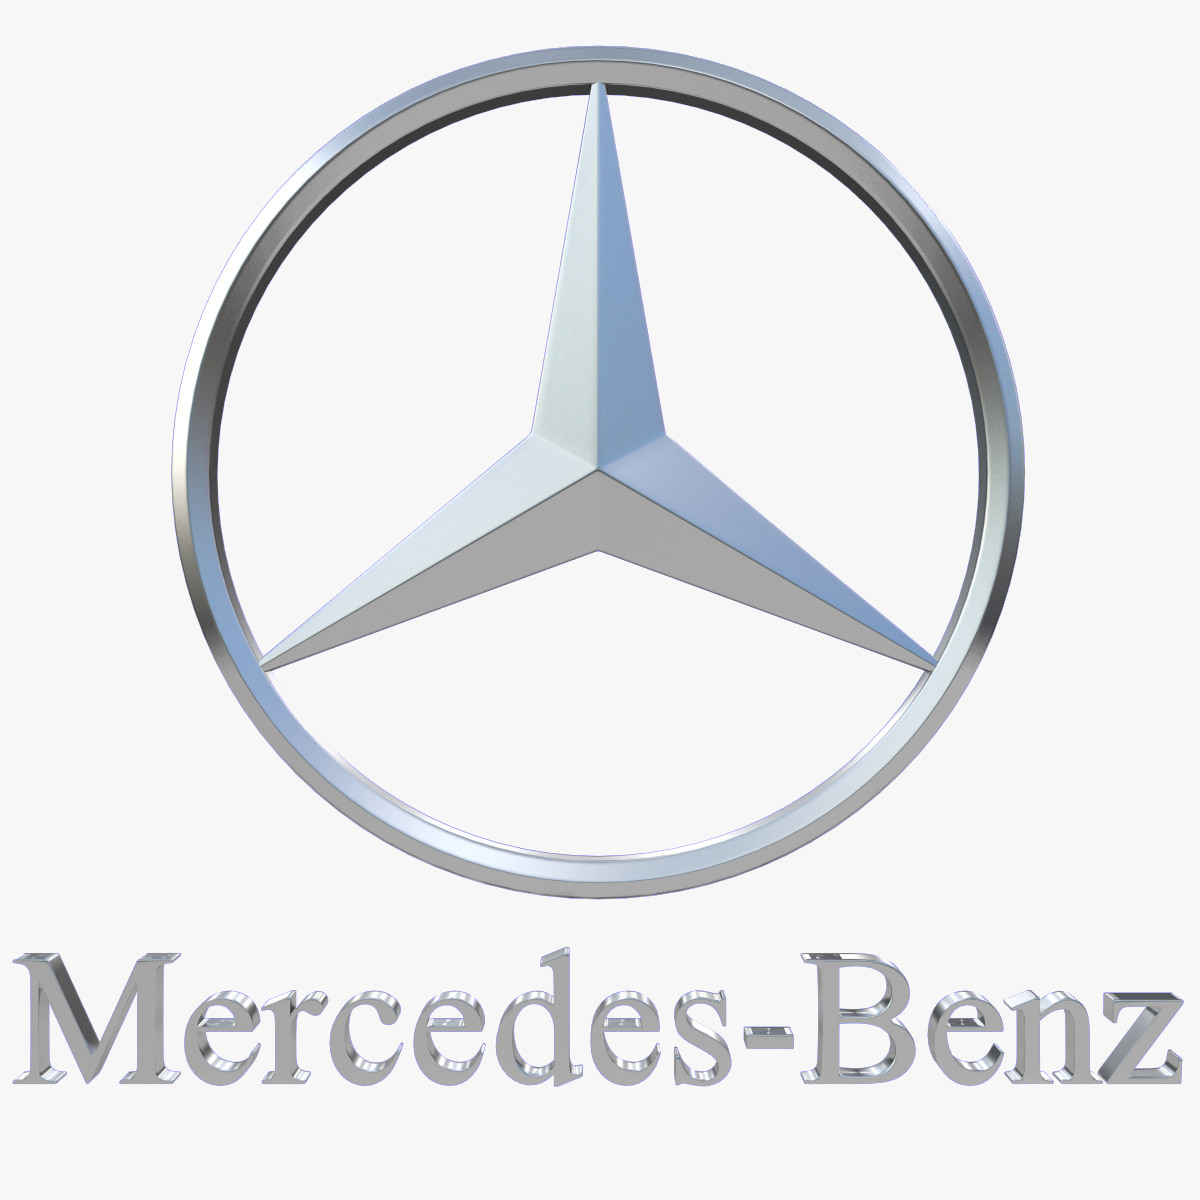 mercedes benz logo 3d model max obj 3ds fbx dxf stl